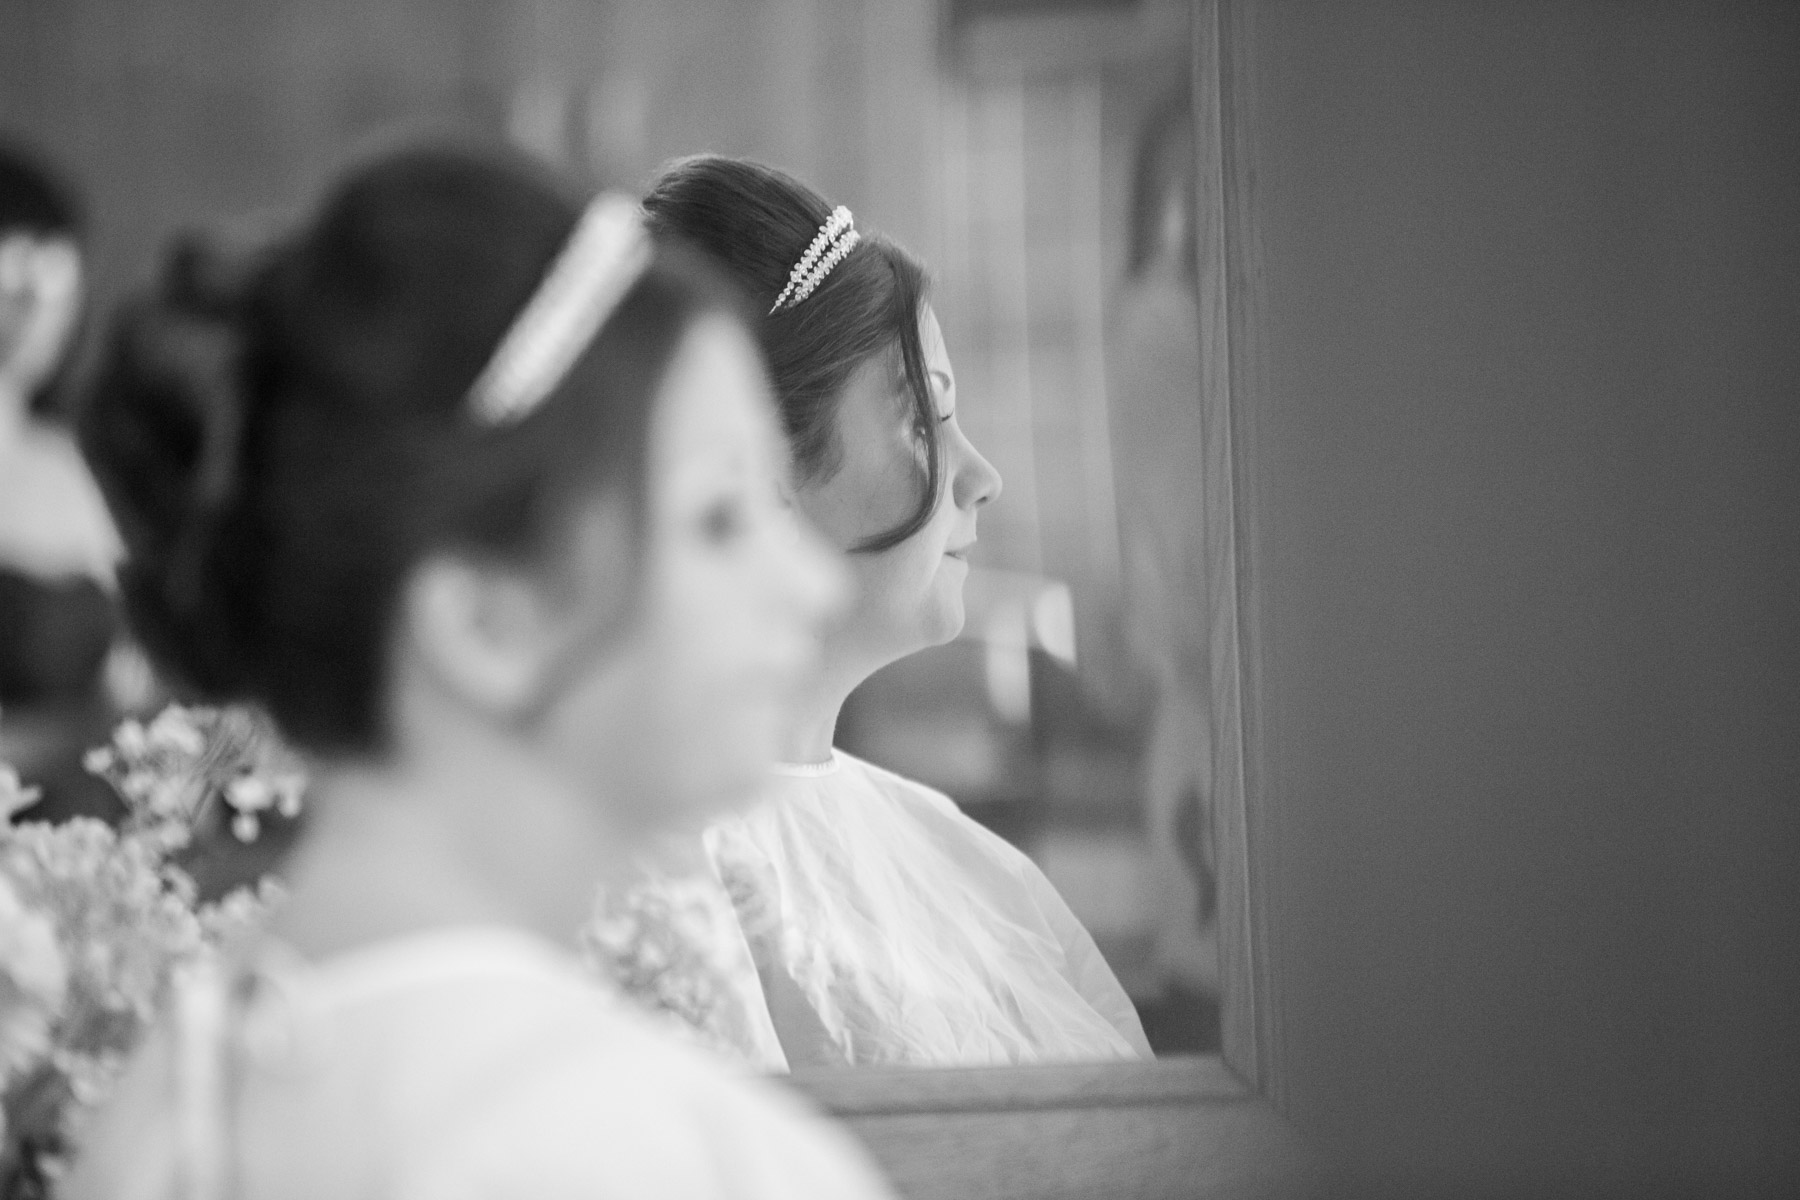 Sussex Wedding Photographer at Buxted Park Hotel by Richard Murgatroyd Photography